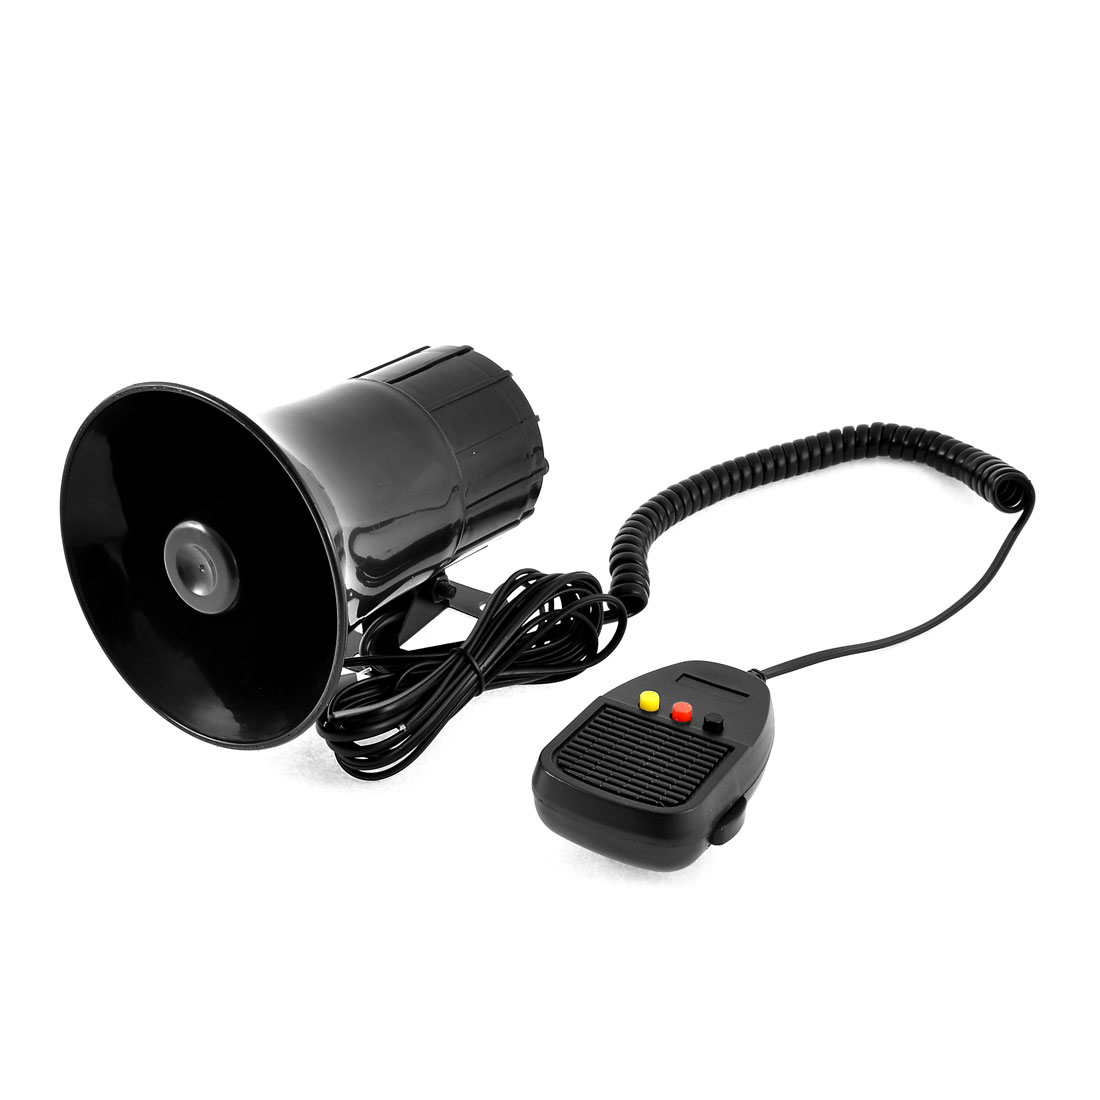 DC 12V 3 Tone Loud Siren Car Security Alarm Horn Controller Kit w Mini Speaker